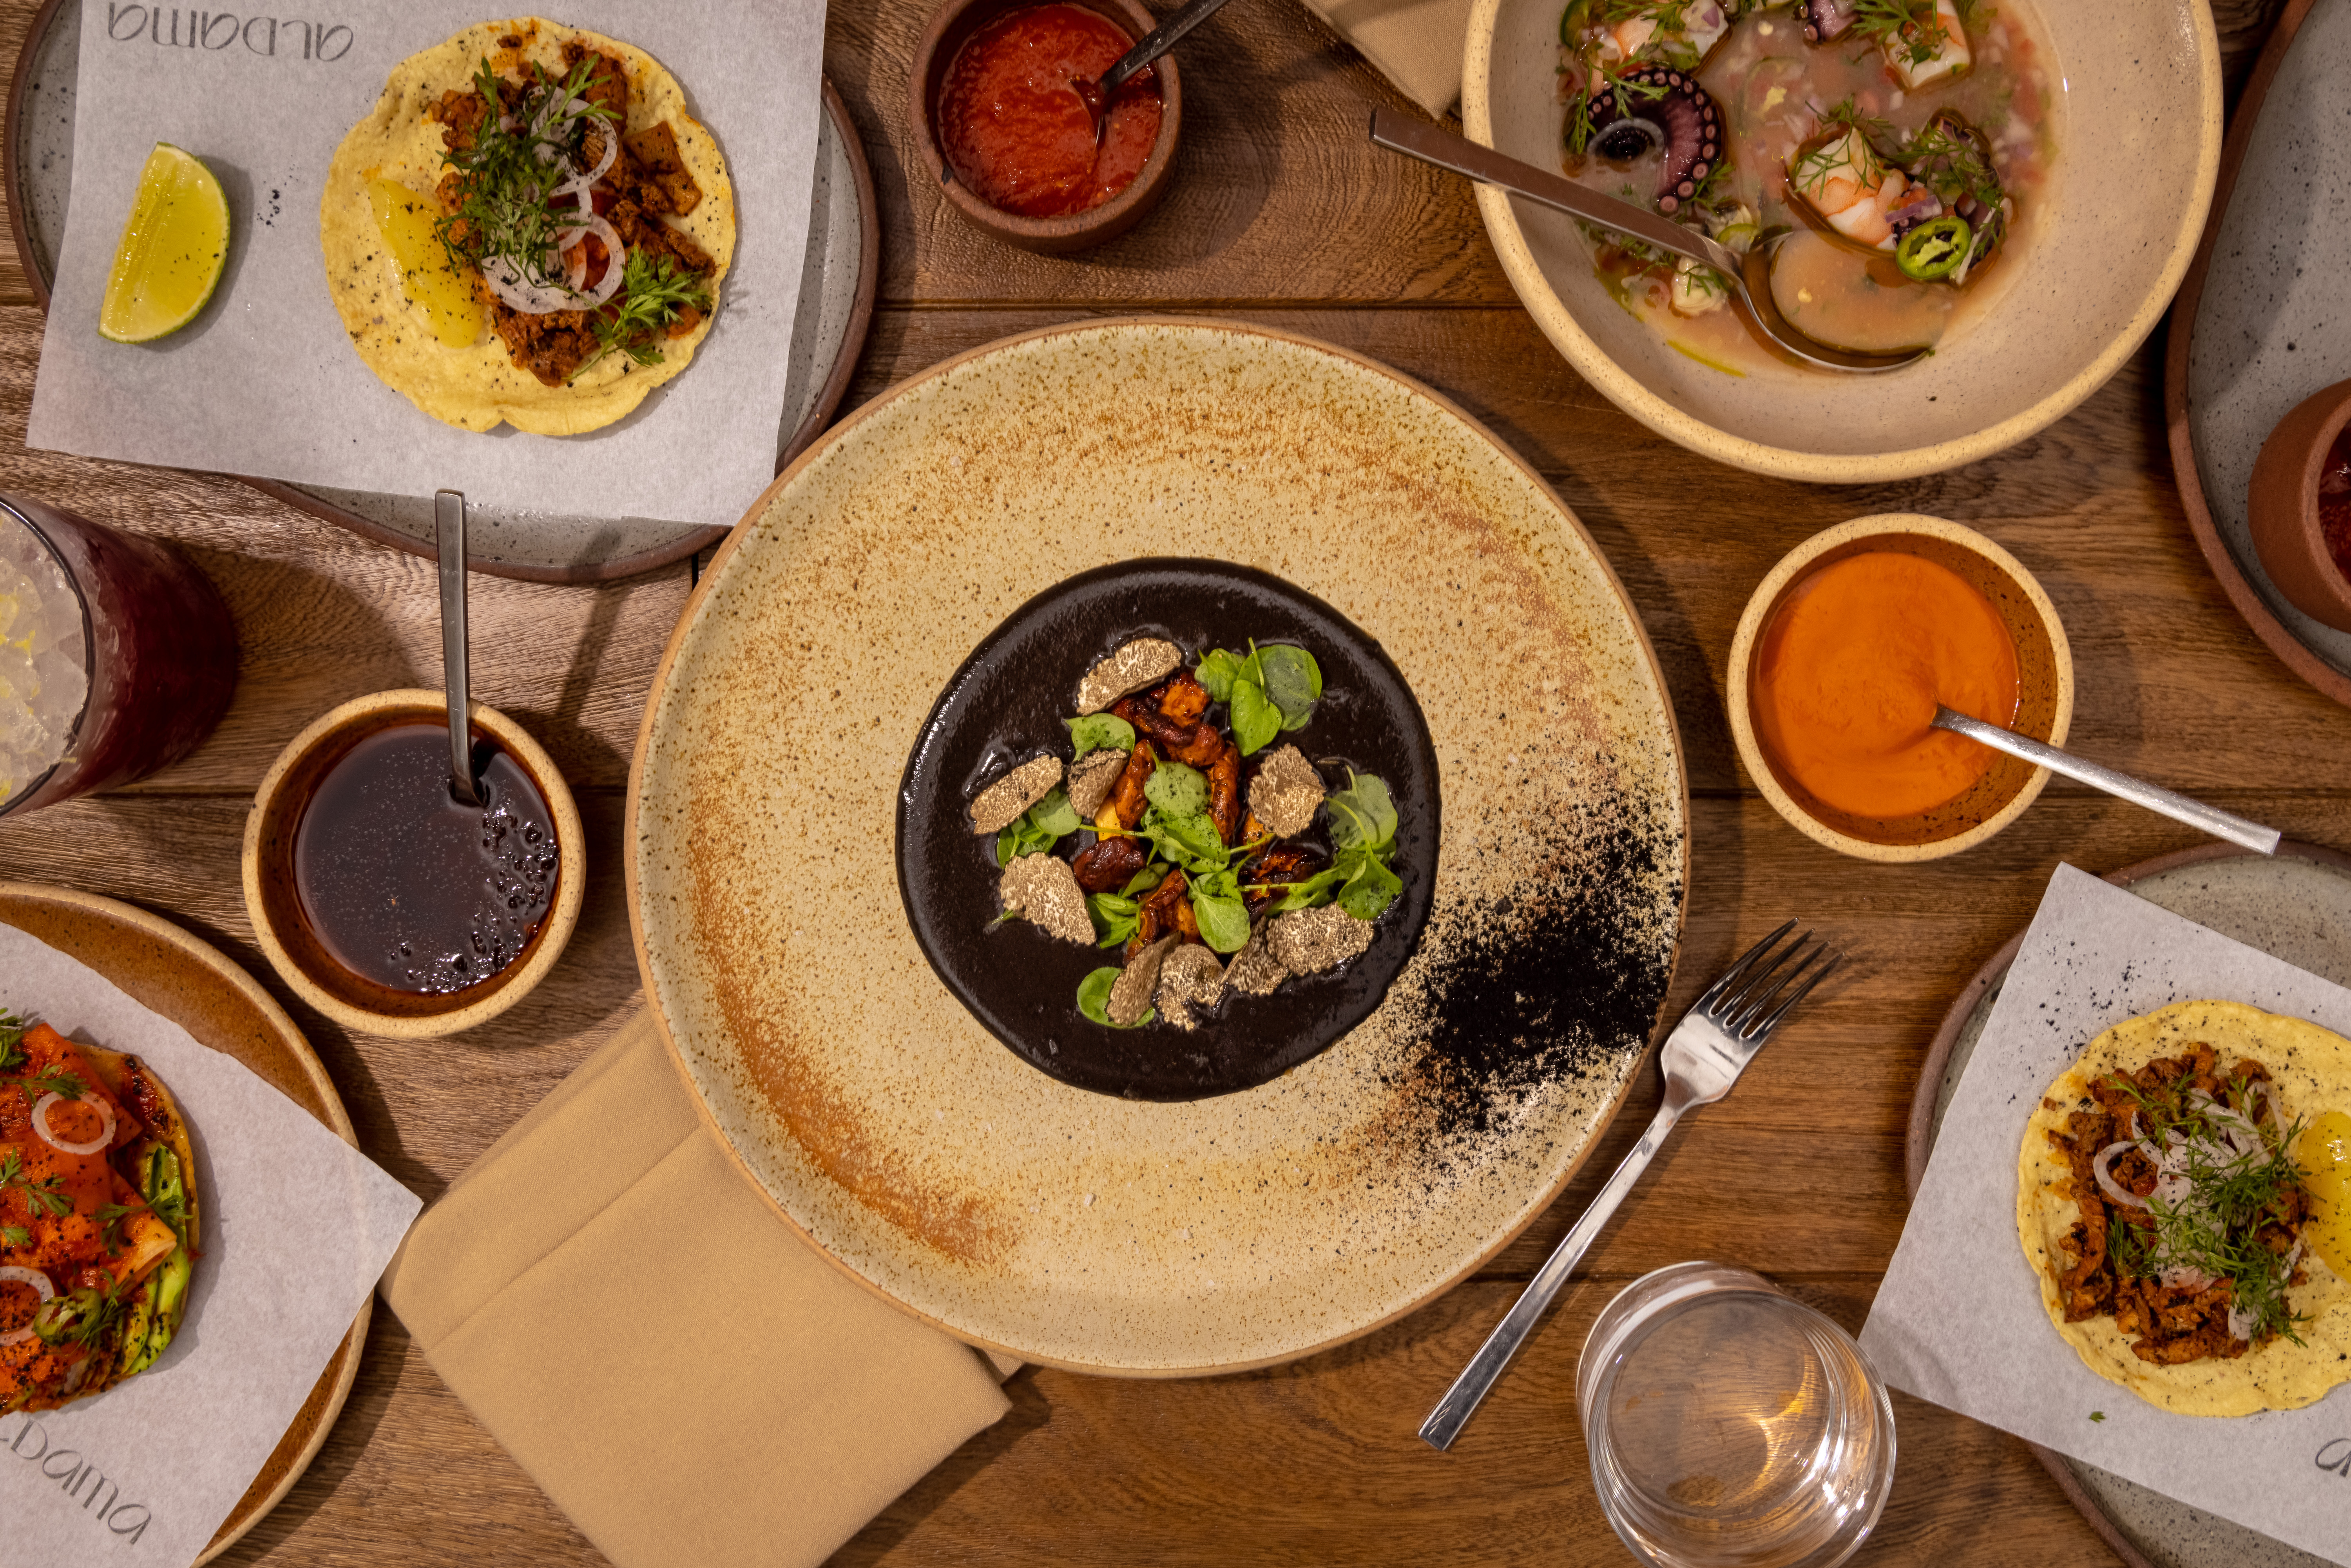 Black mole on a ceramic plate sits in the middle of the overhead shot; assorted other issues include an al pastor taco and a colorful tostada surround it